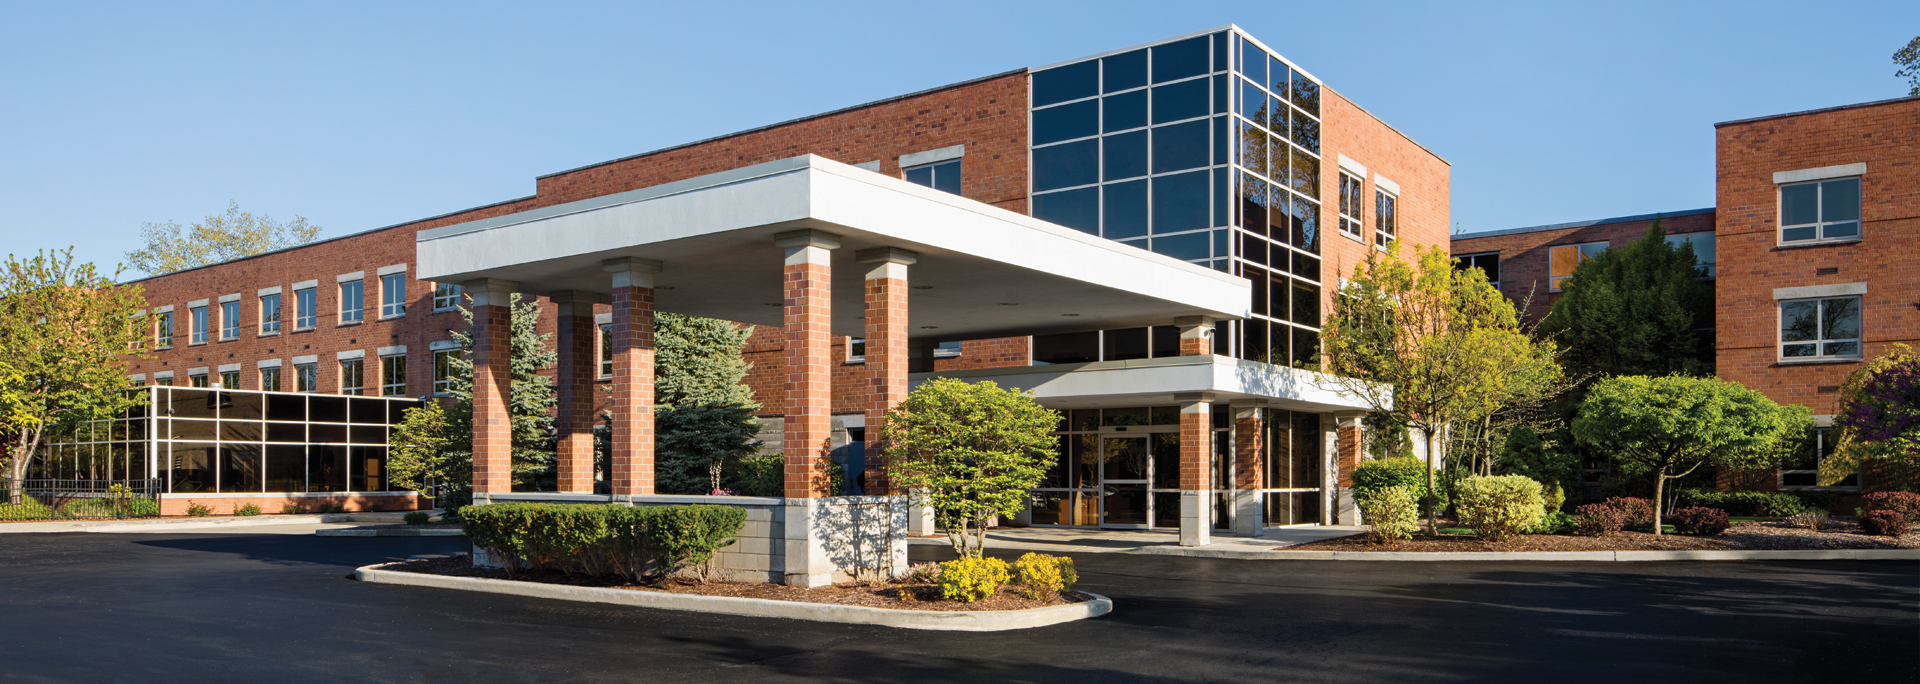 Glenview Terrace - Healthcare Center